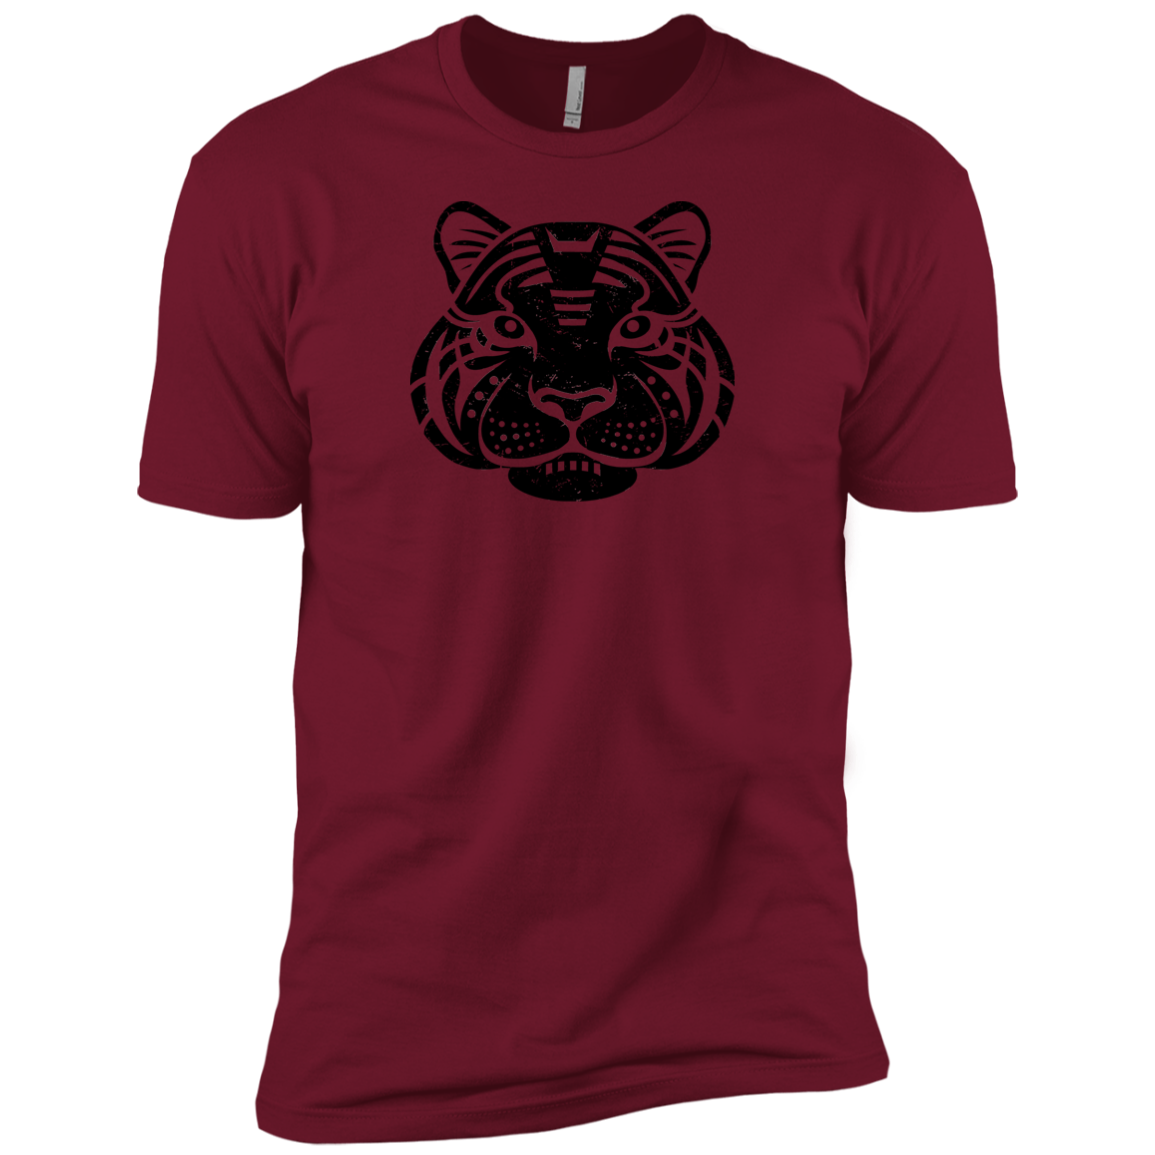 Black Distressed Emblem (Tiger/Siber) - Dark Corps